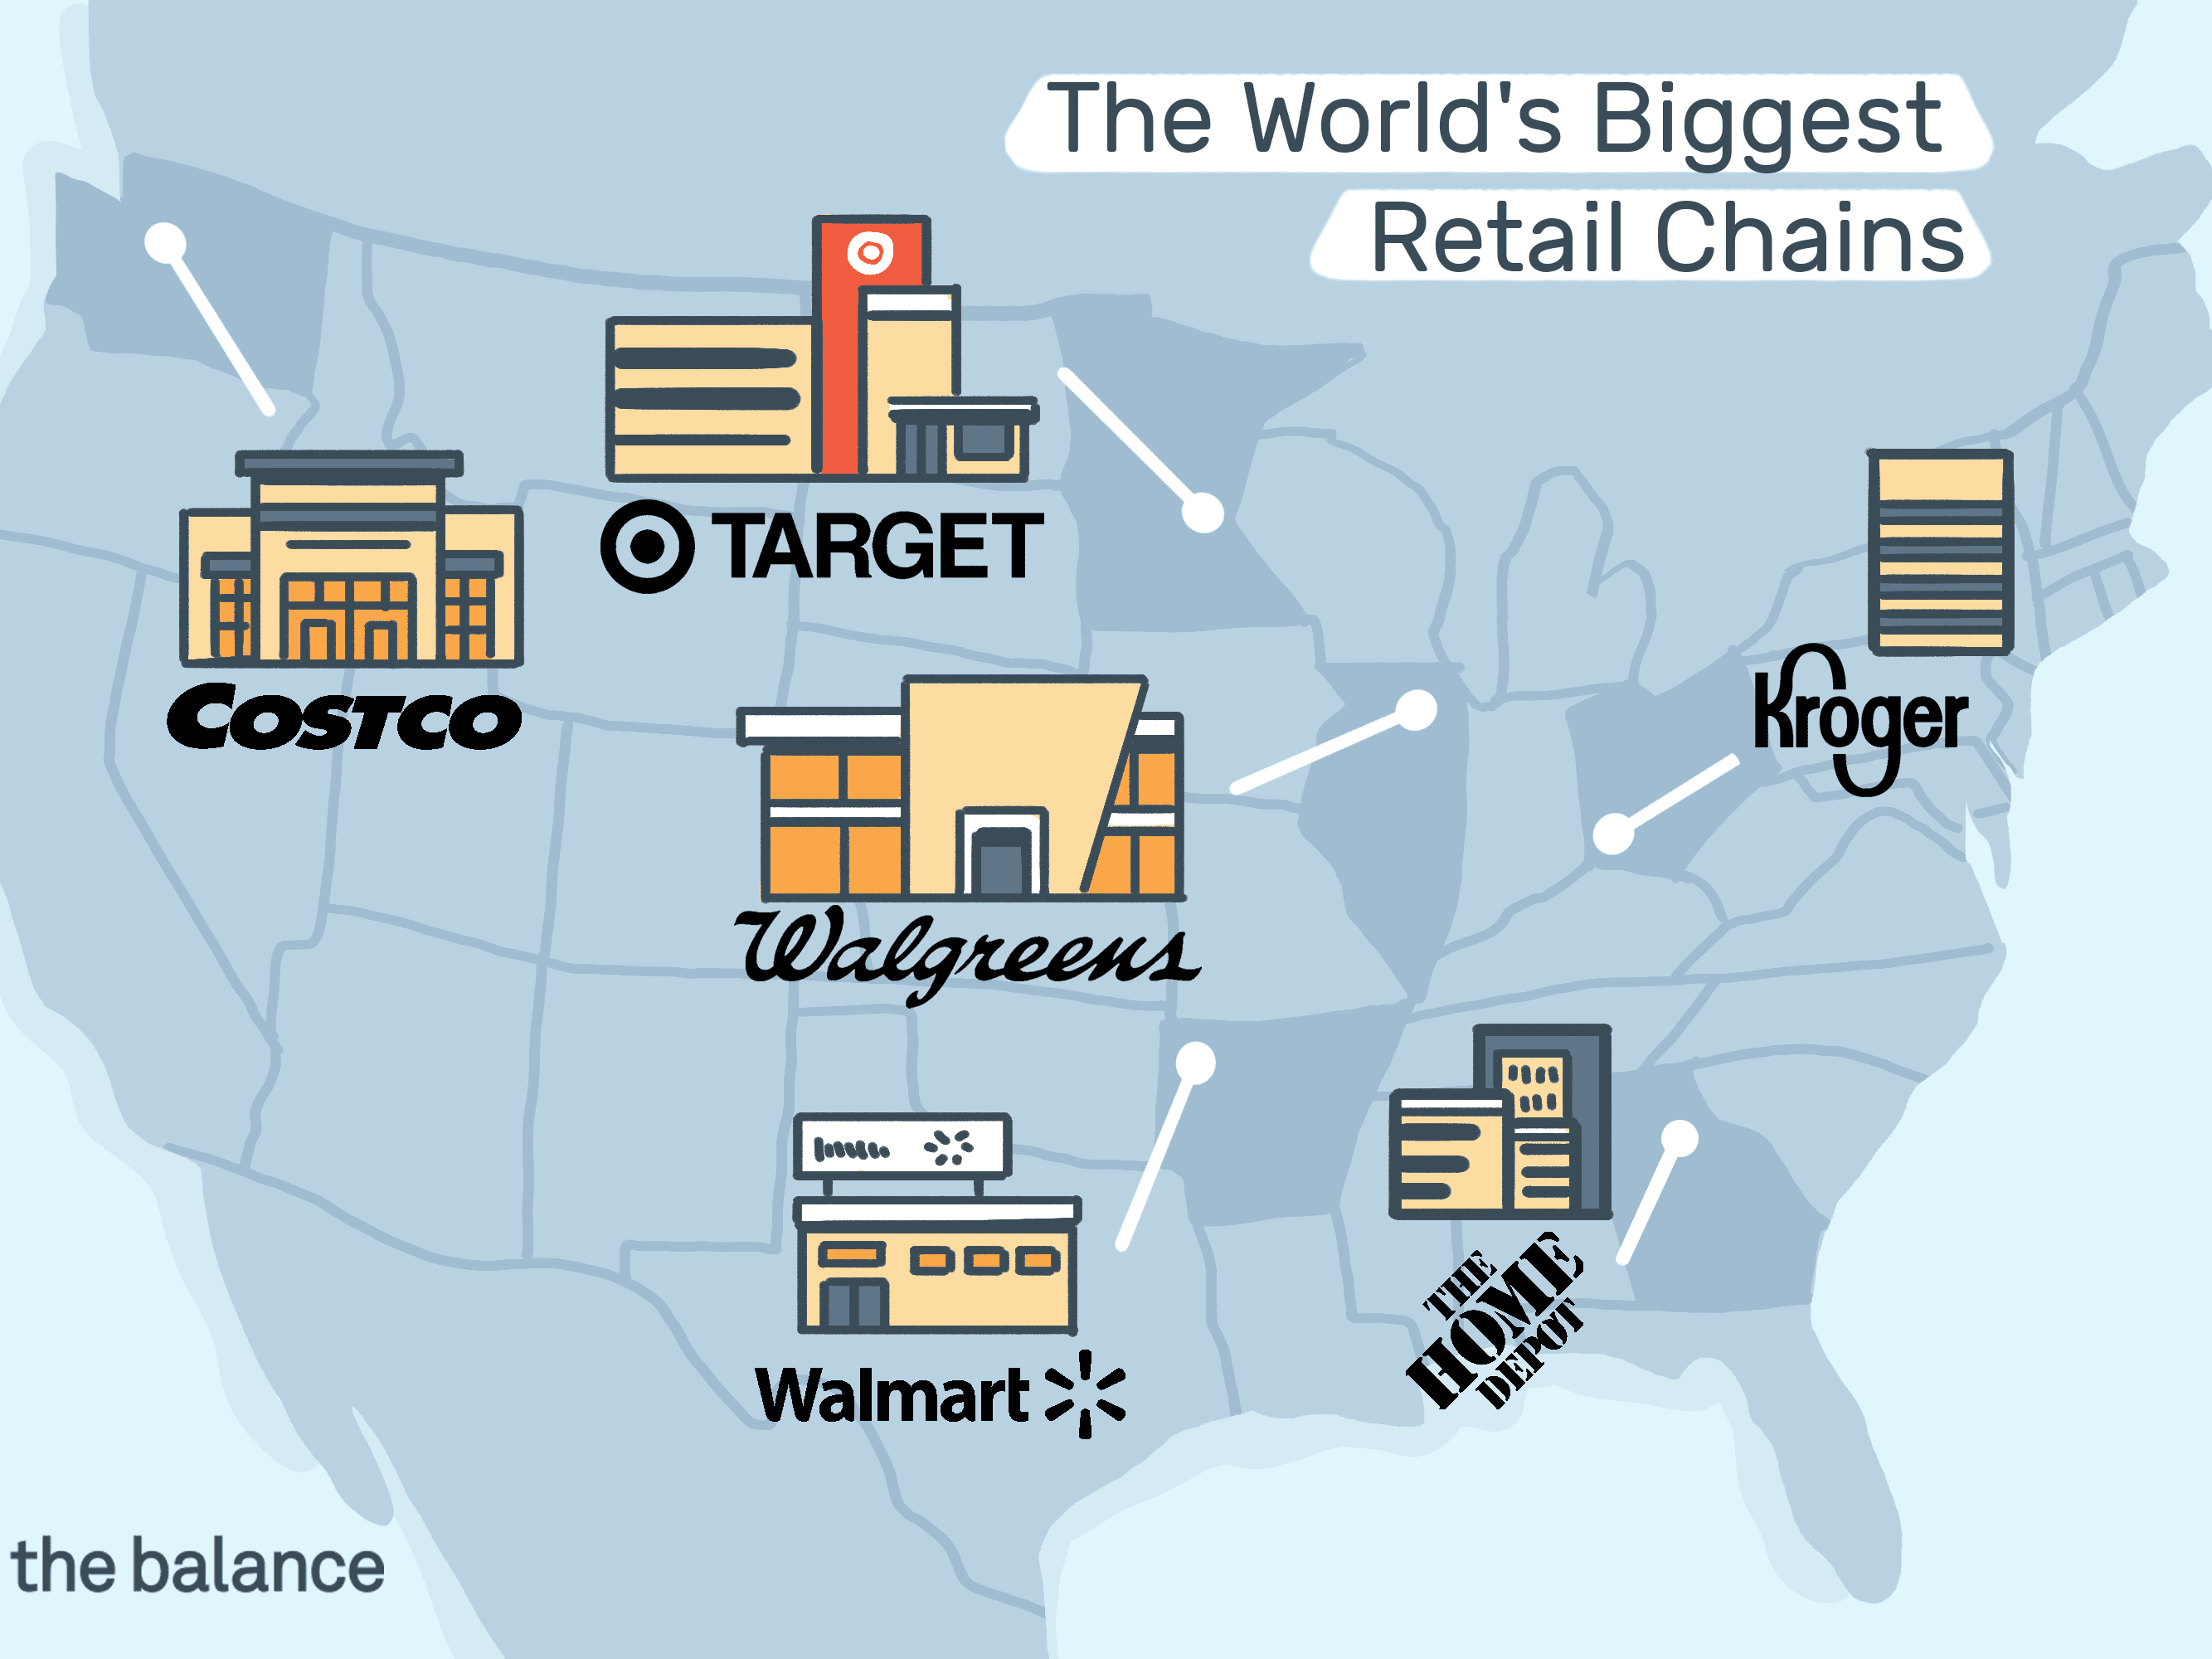 The World's Biggest Retail Chains